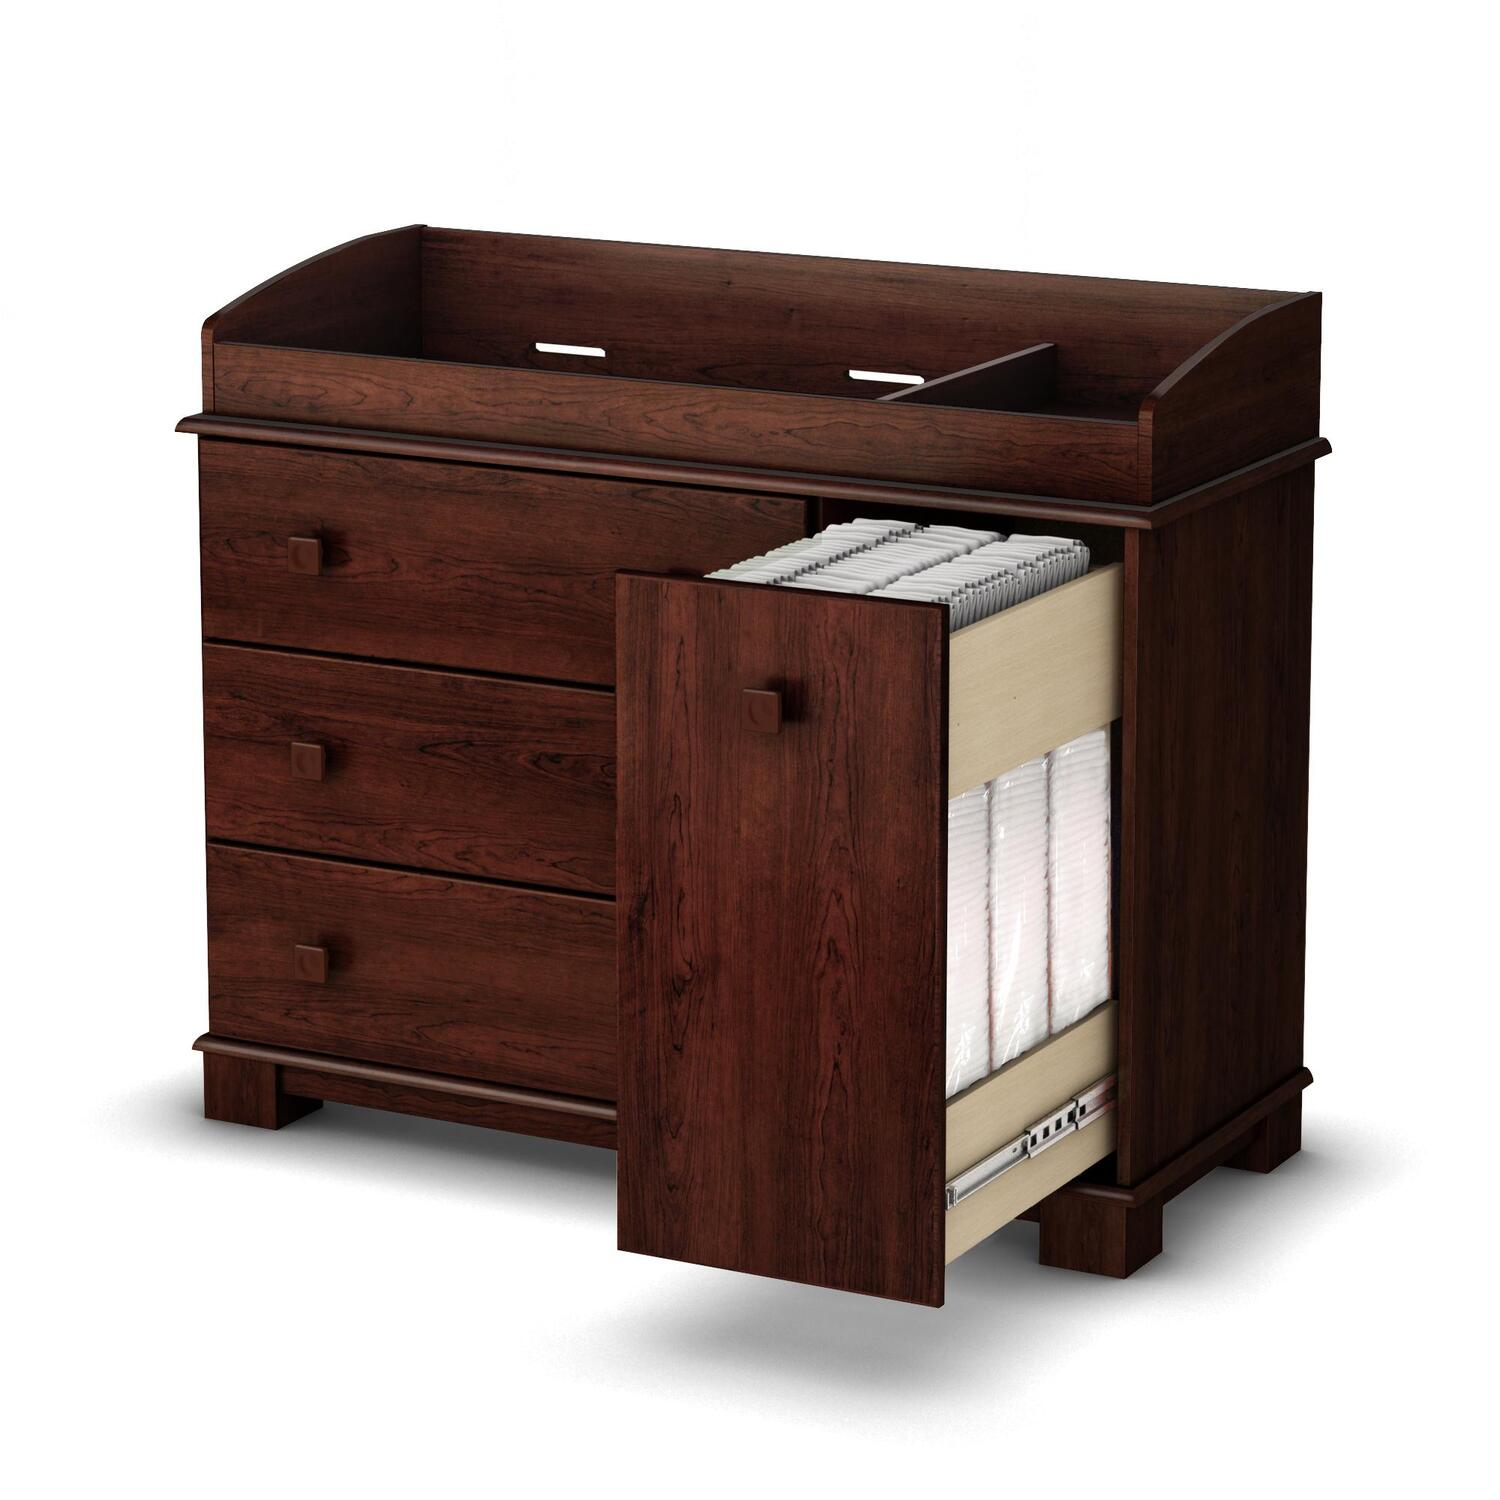 Babies R Us Changing Table Dresser South Shore Precious Changing Table by OJ Commerce 3346333 - $386.99